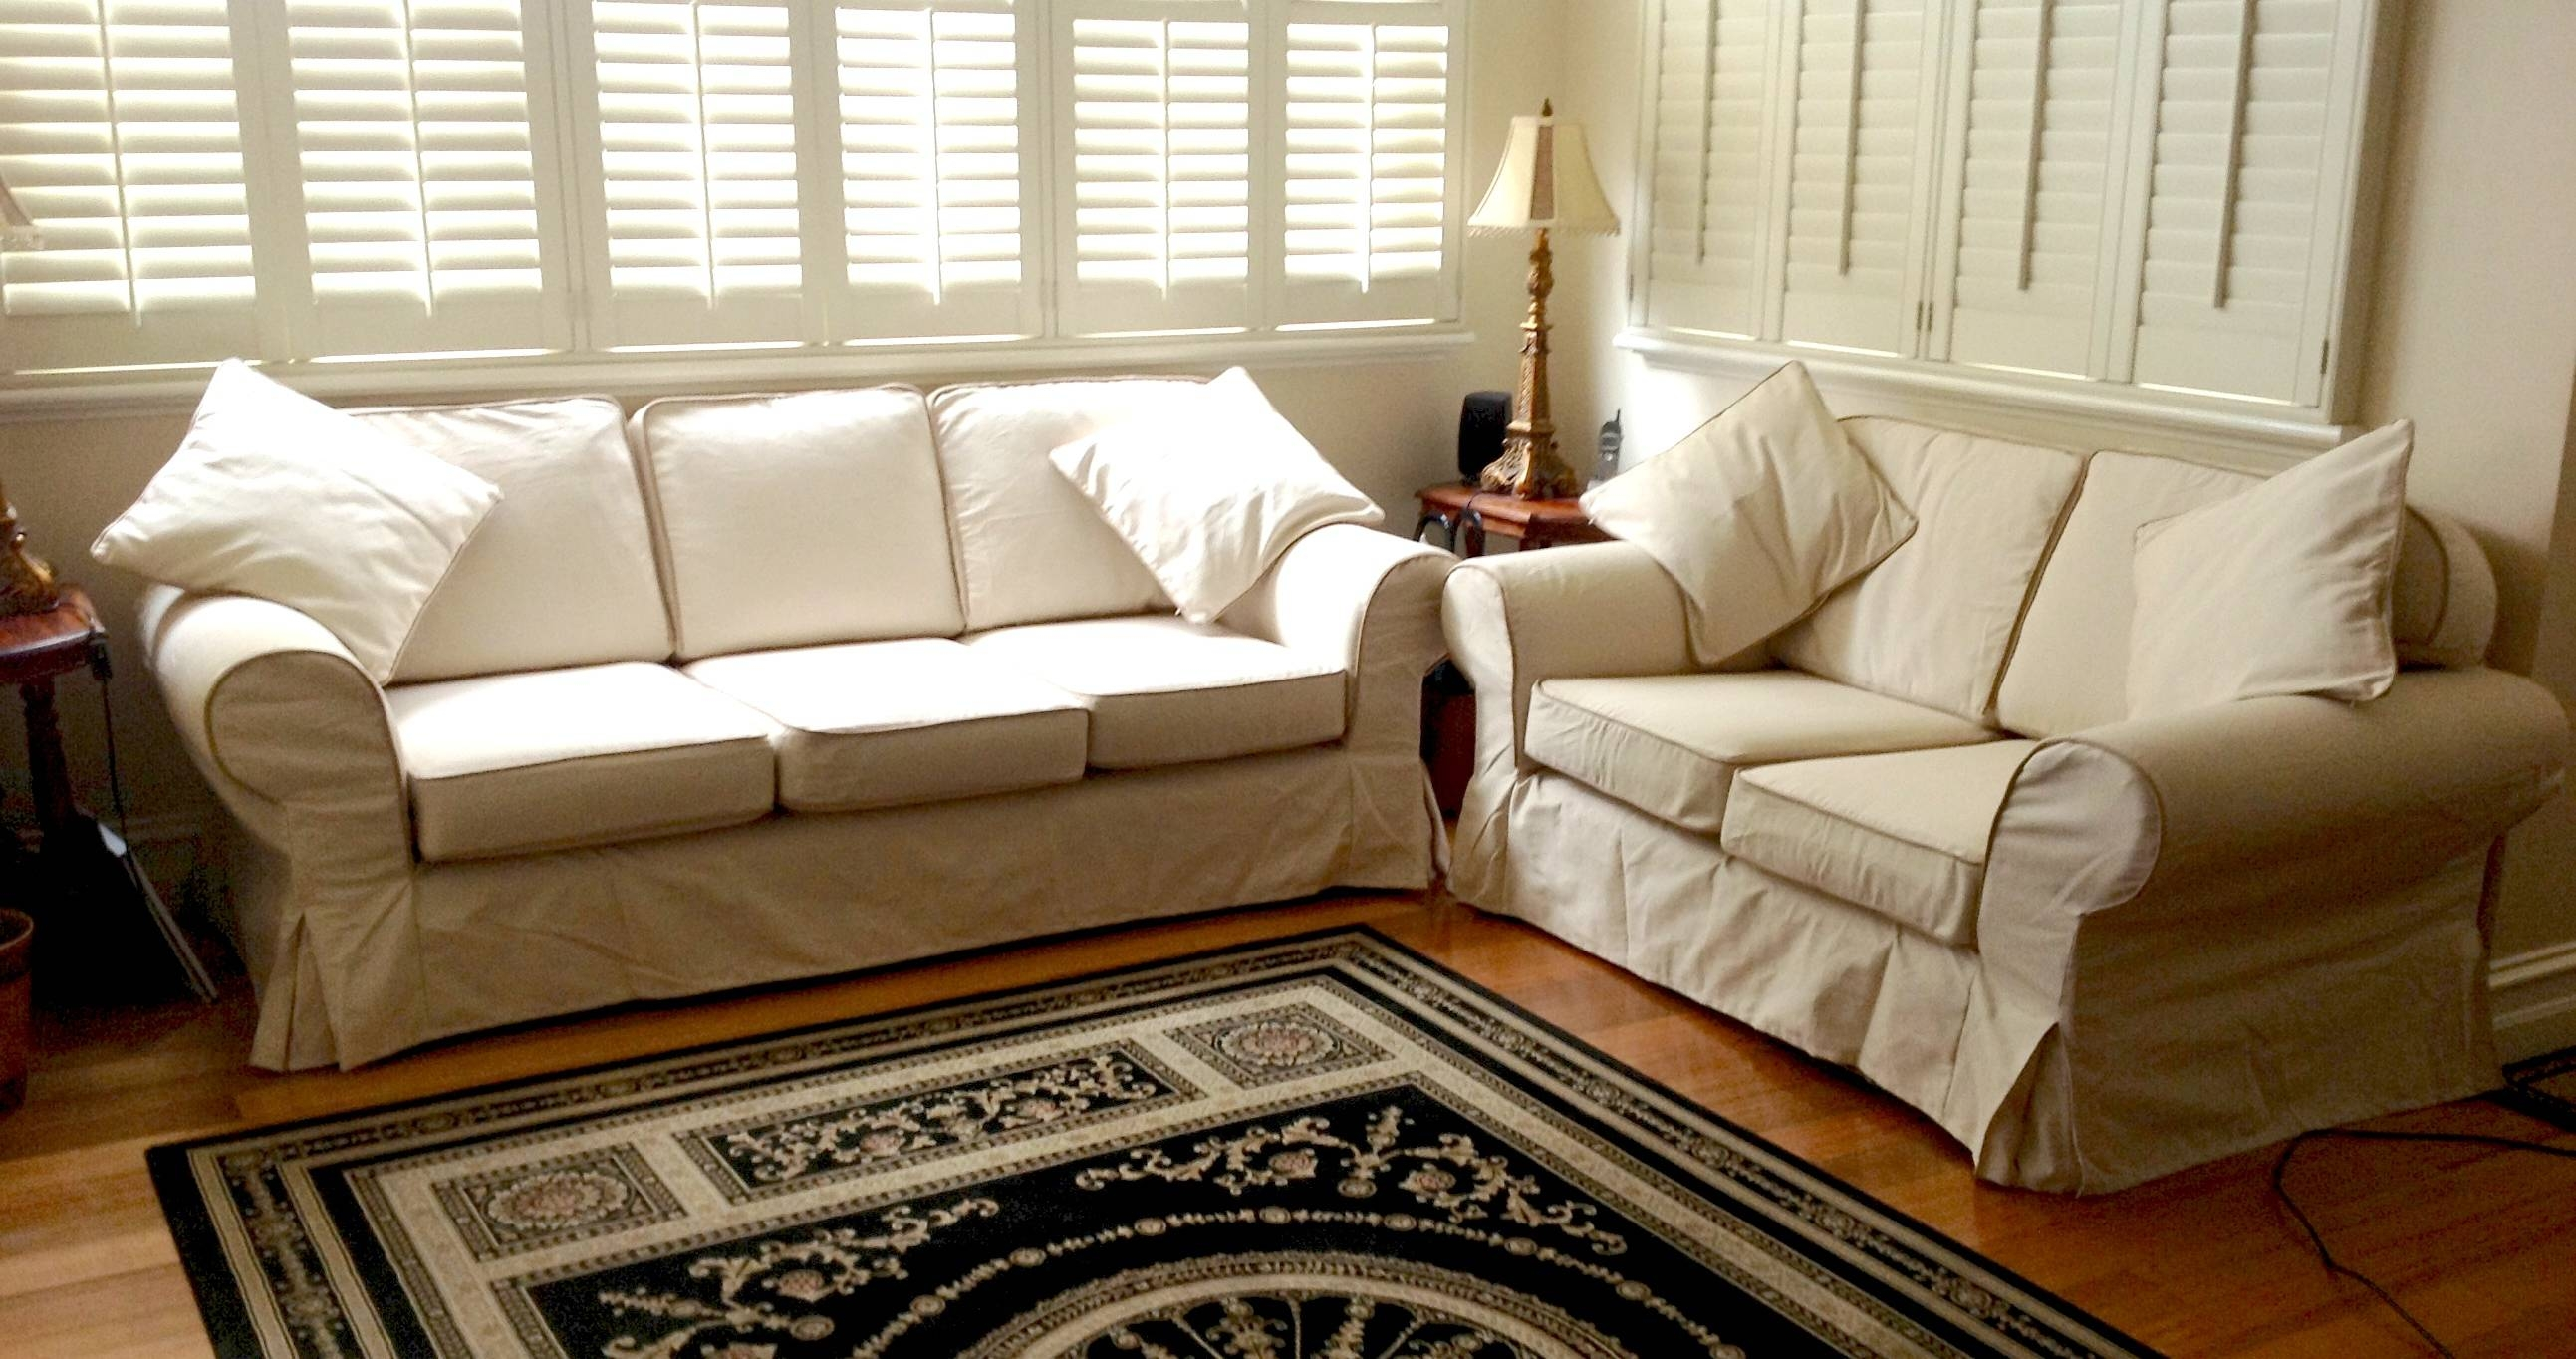 Custom Slipcovers And Couch Cover For Any Sofa Online Throughout Canvas Sofa Slipcovers (View 3 of 15)